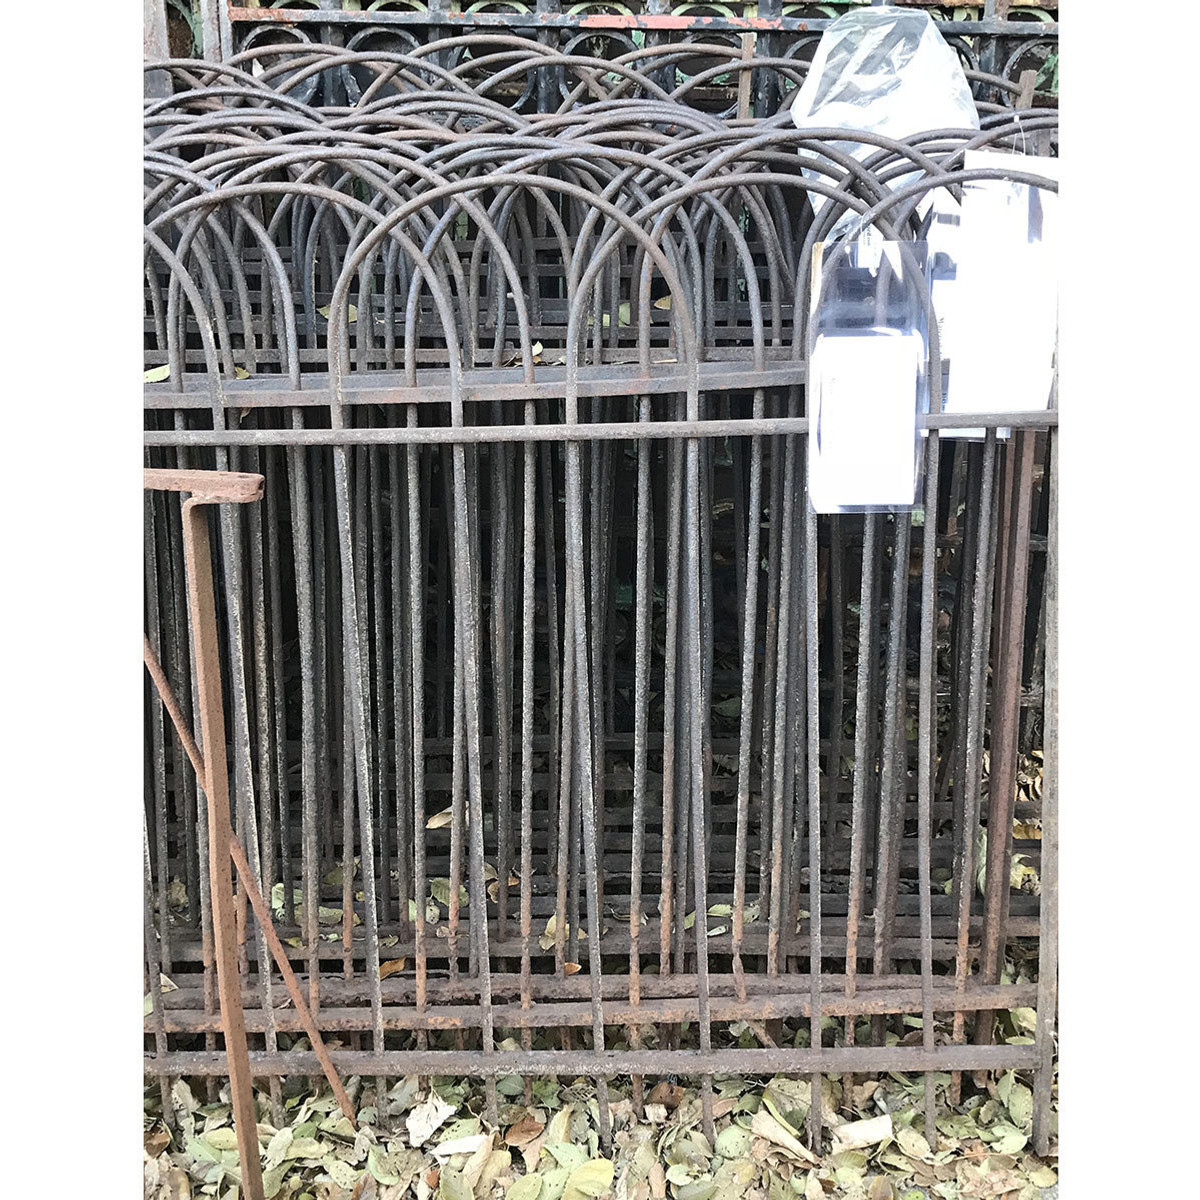 S17073 - Antique Wrought Iron Fence Section